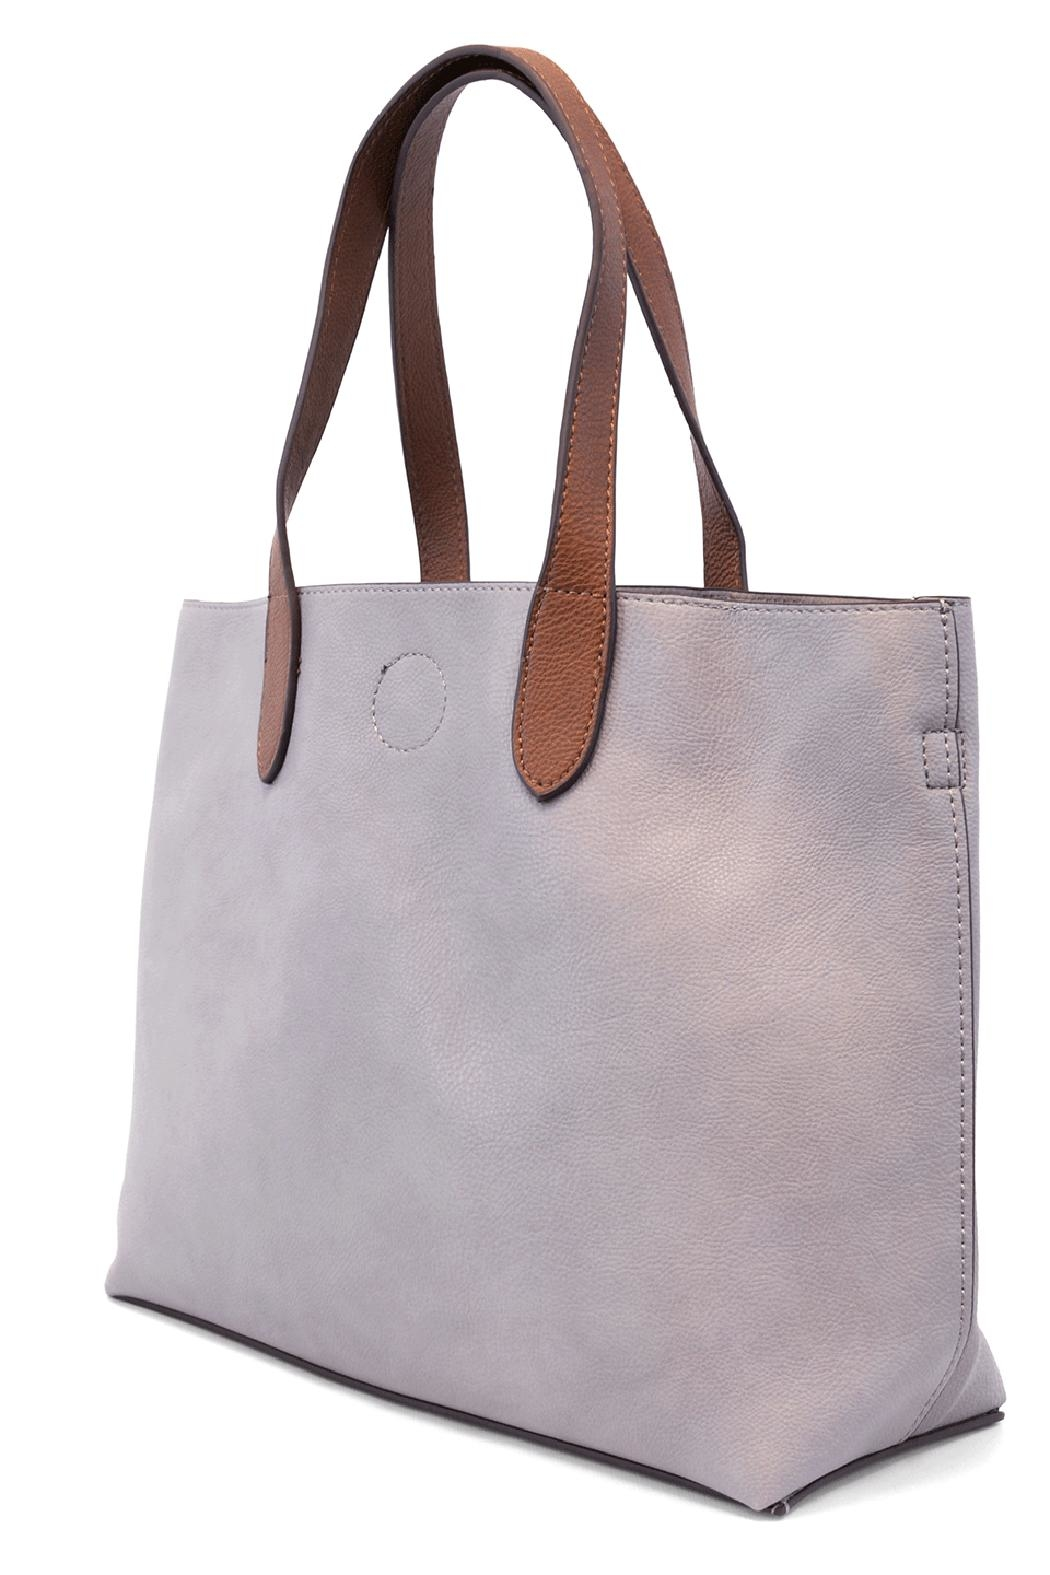 Joy Susan Accessories Mariah Convertible Tote - Front Full Image